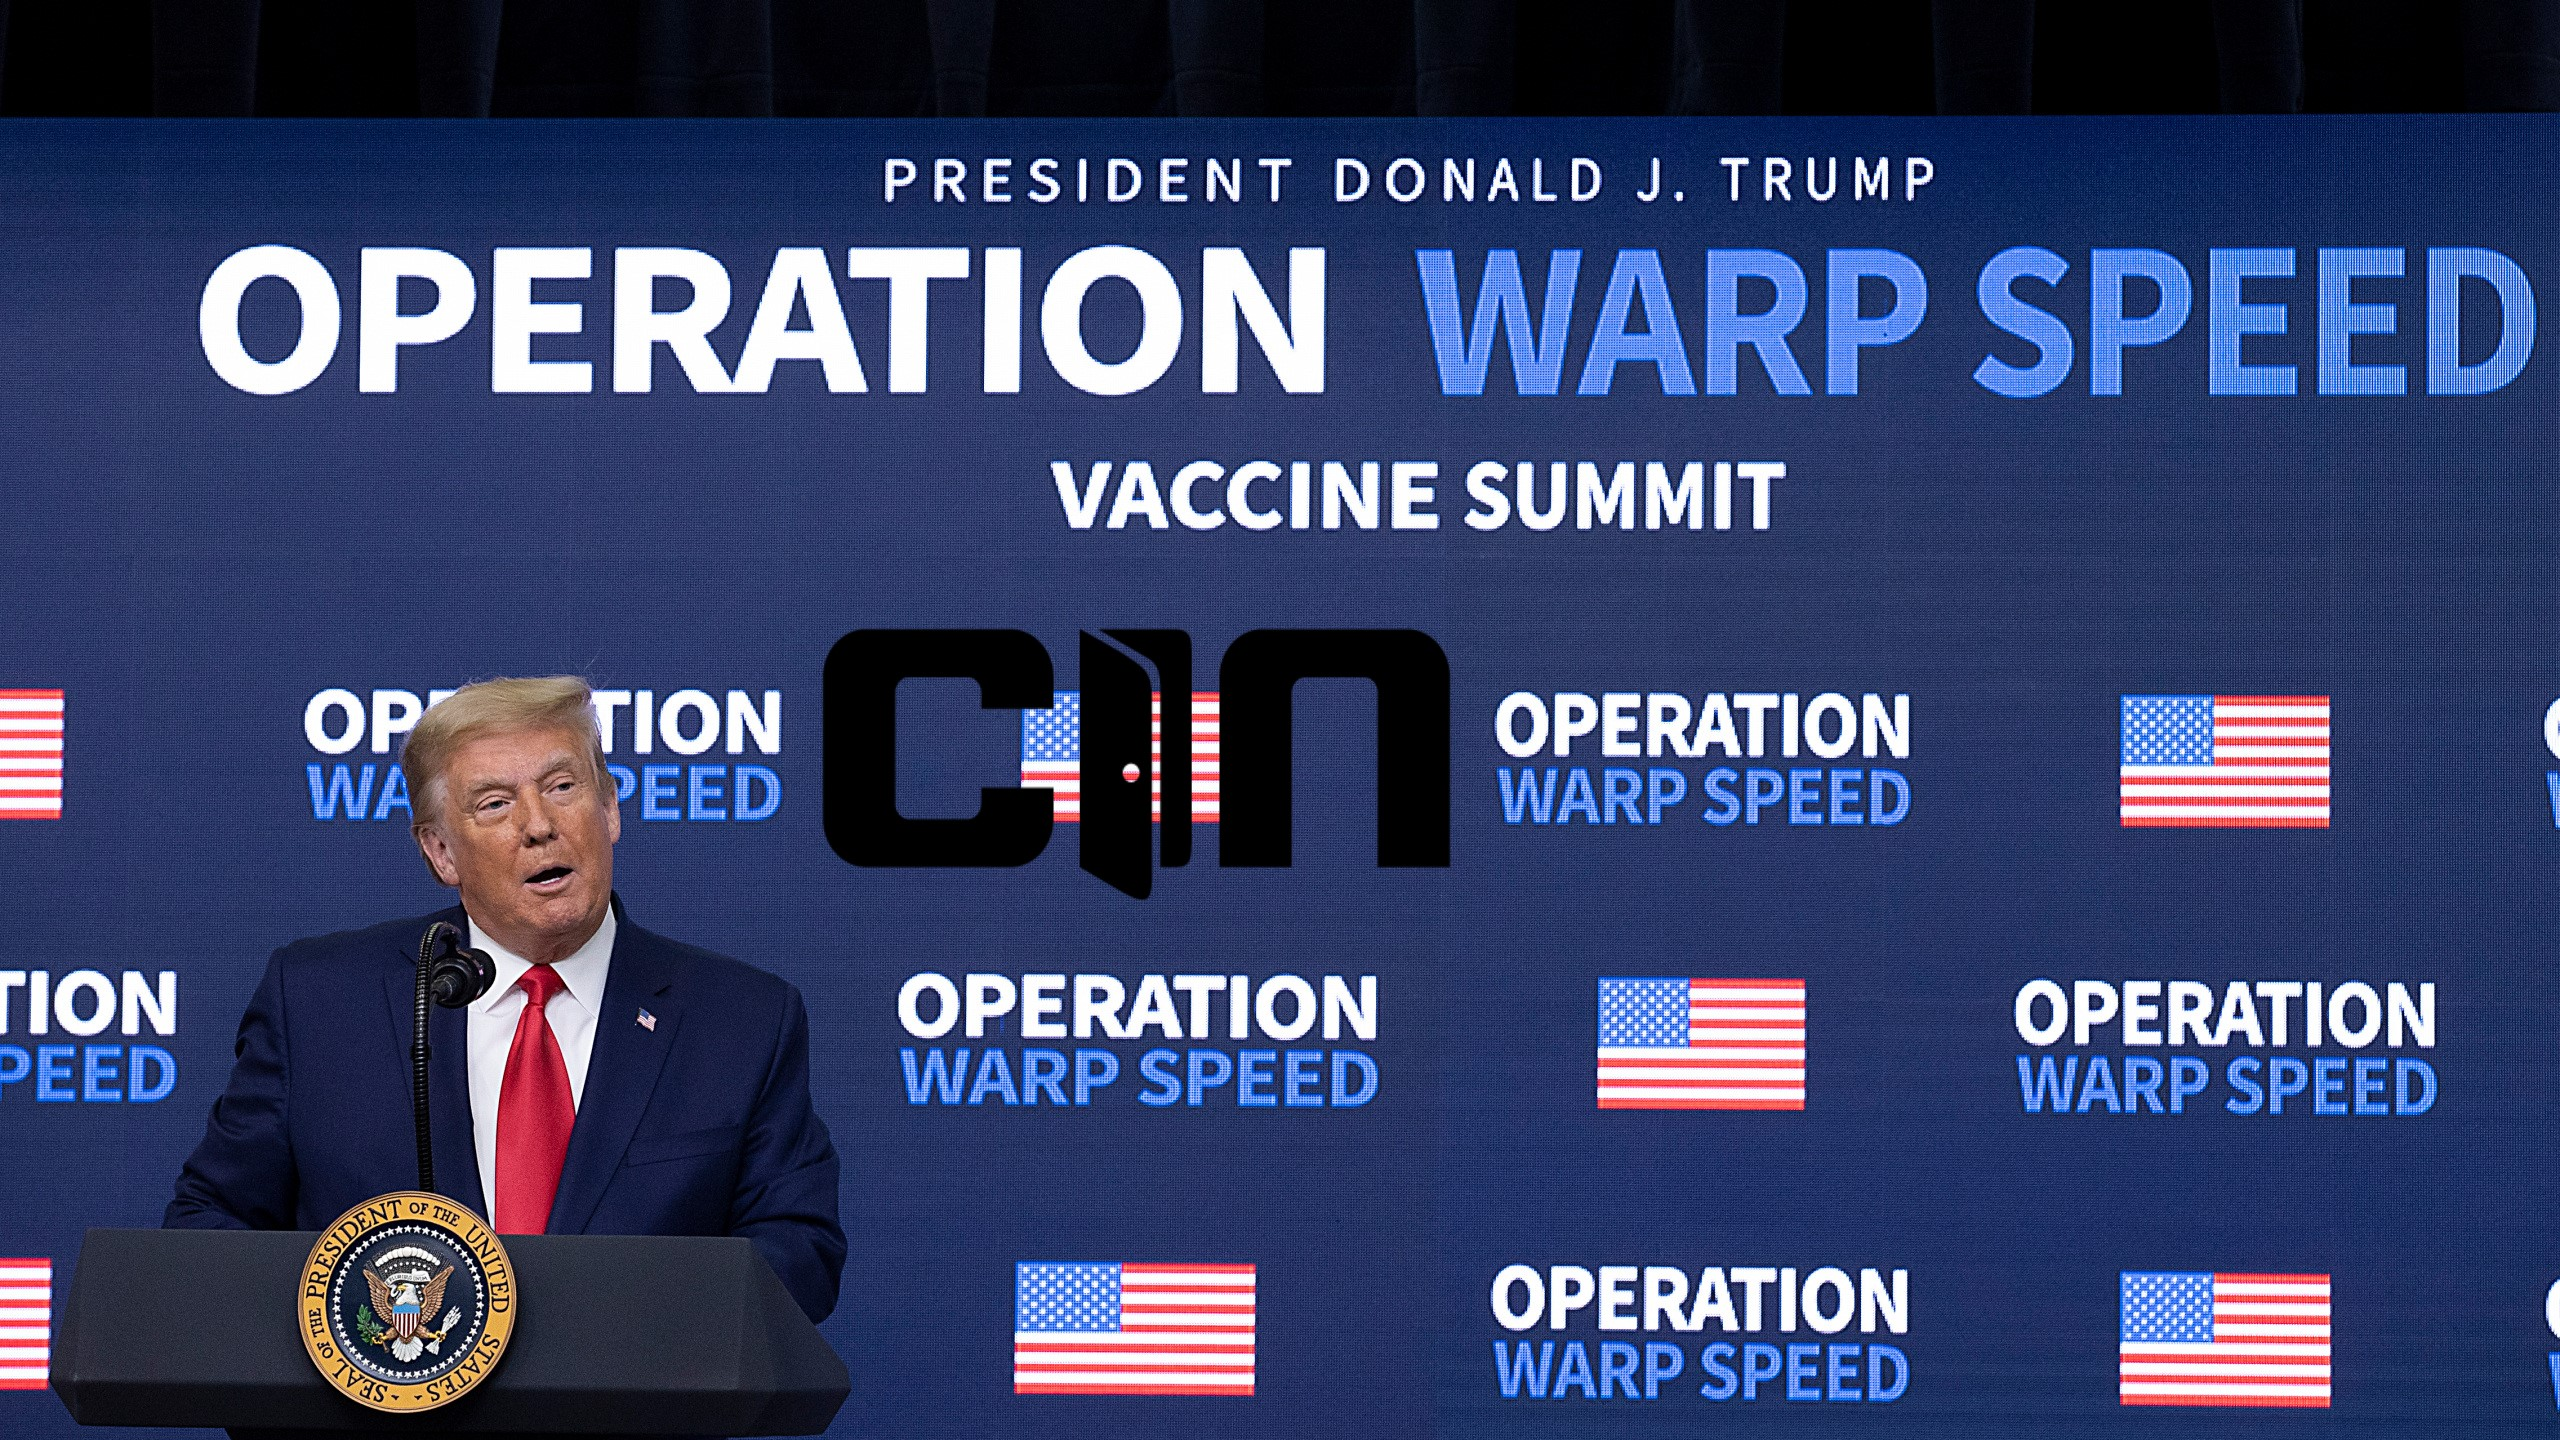 VIDEO: Inside the Operation Warp Speed Effort to Get Americans a COVID-19 Vaccine